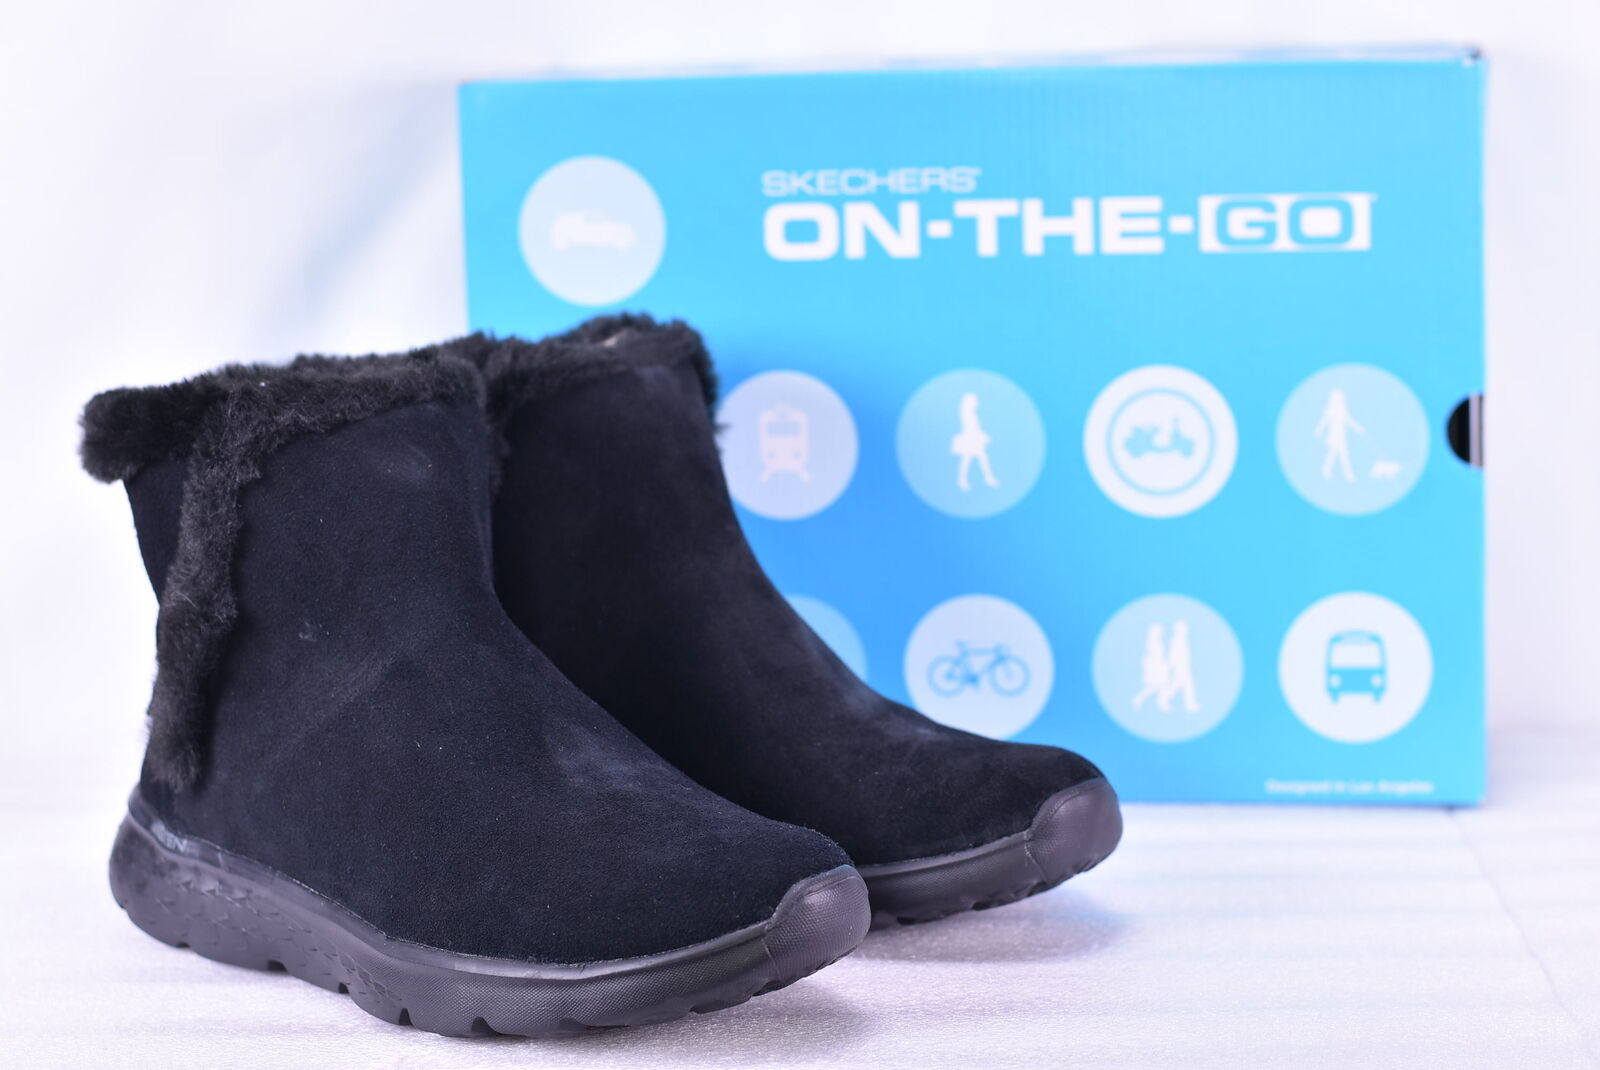 skechers on-the-go 400-snugly